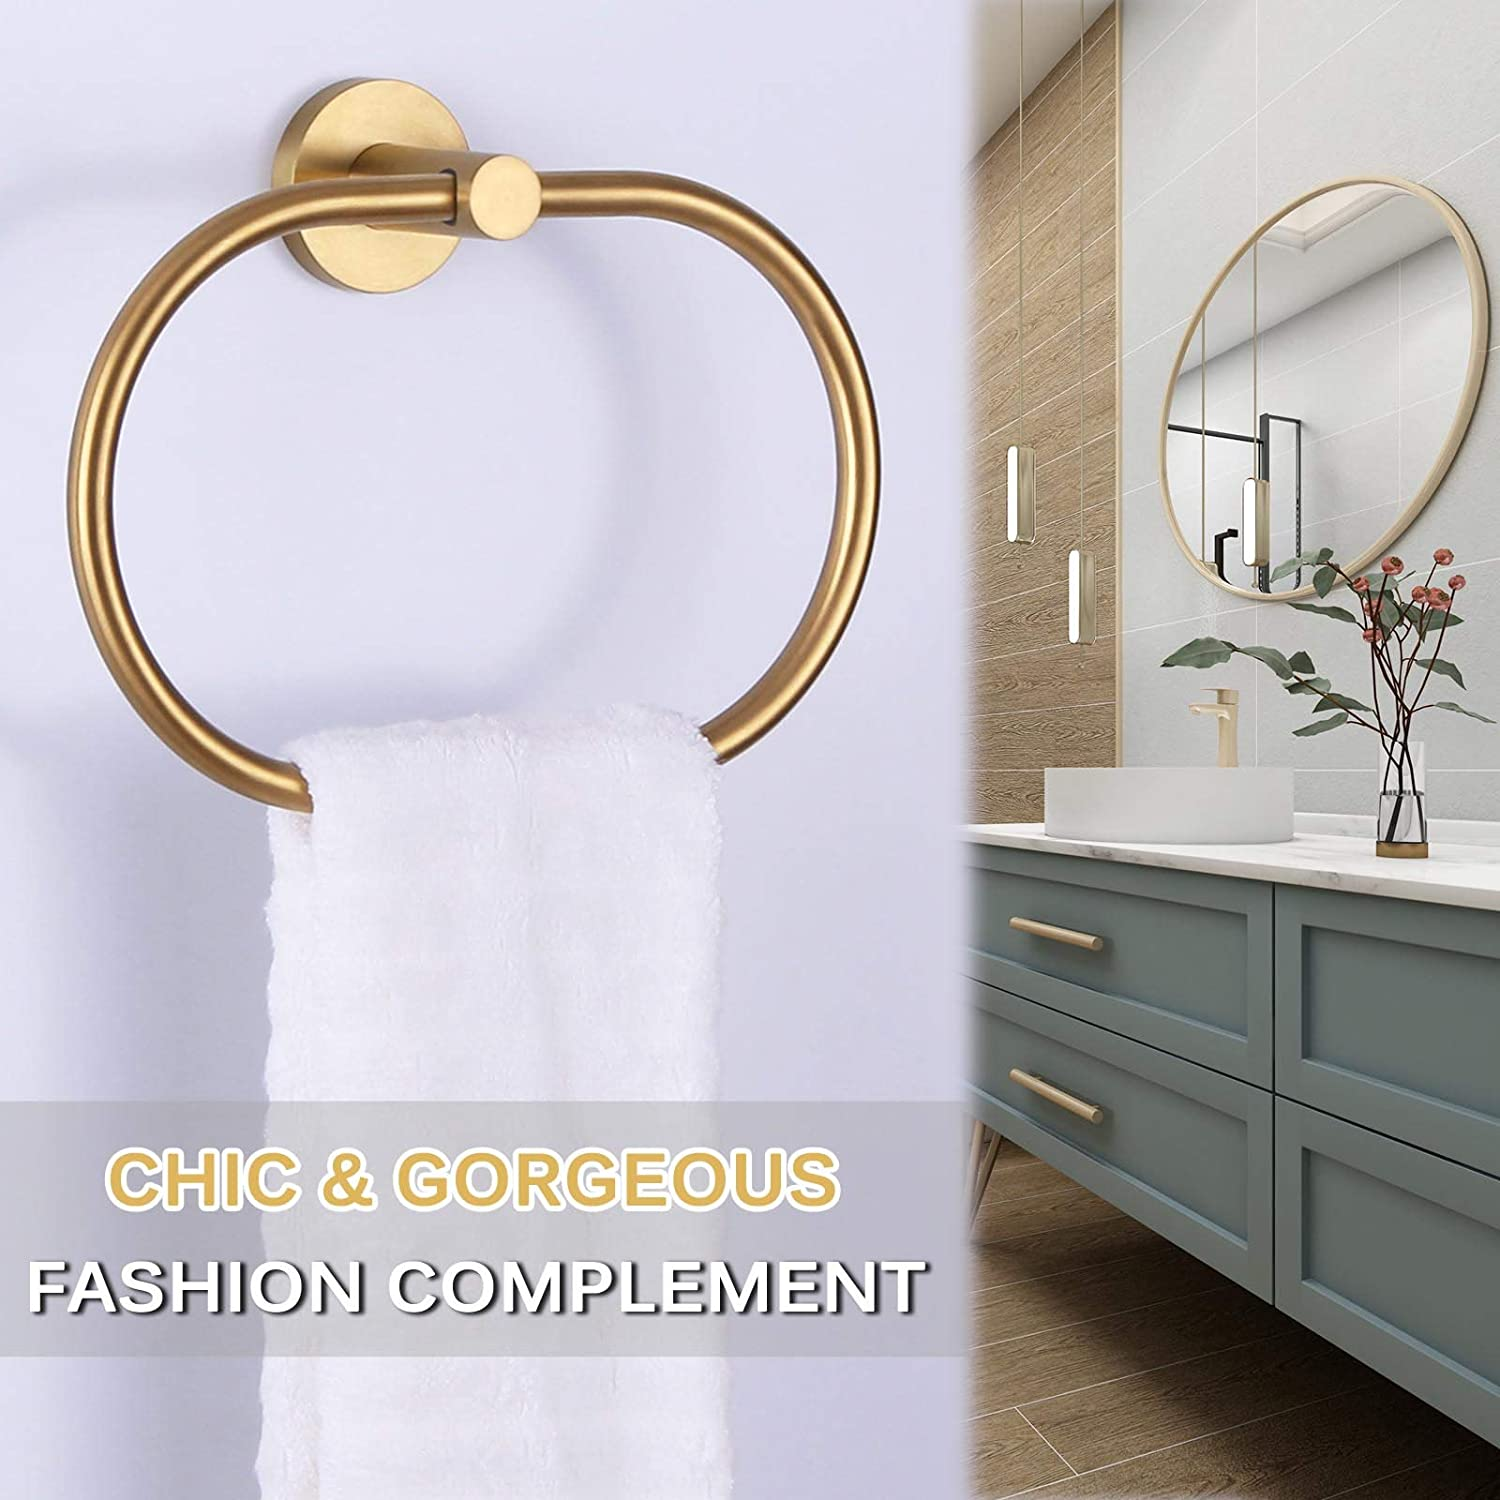 9.5-Inch Towel Ring Brushed Gold Bathroom Towel Holder for Wall Angle Simple SUS304 Stainless Steel Movable Hand Towel Rack